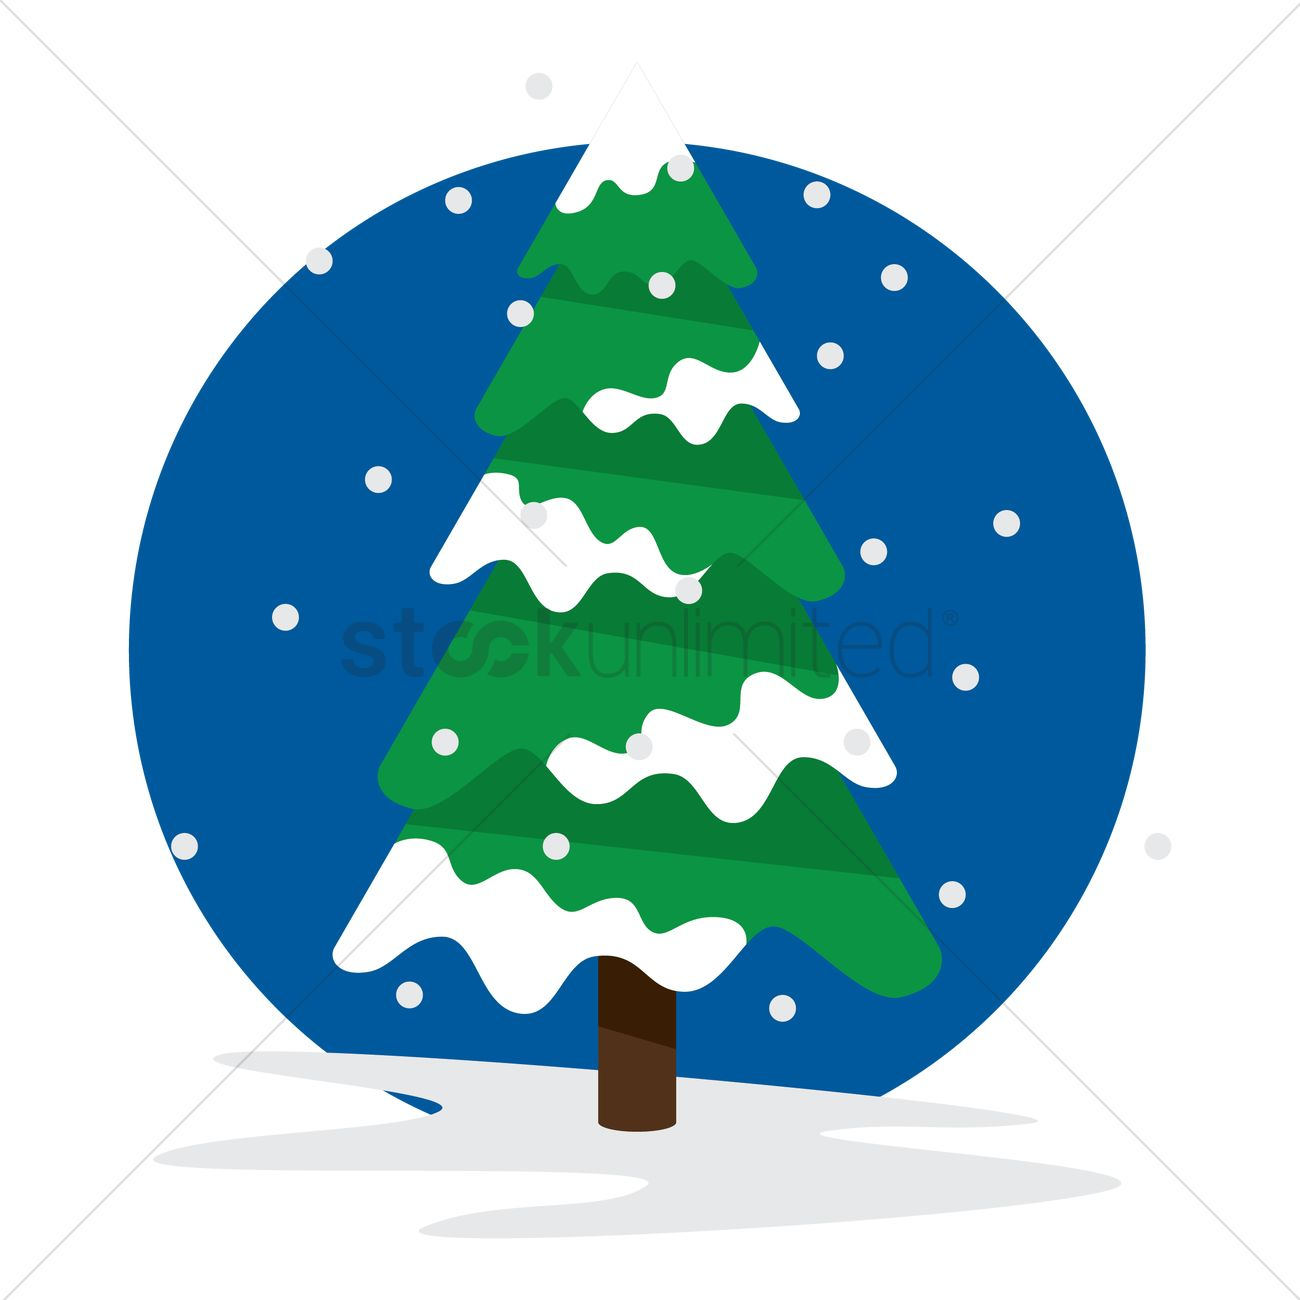 pine tree during winter vector image 1344976 stockunlimited rh stockunlimited com winter vector winter vectors free download